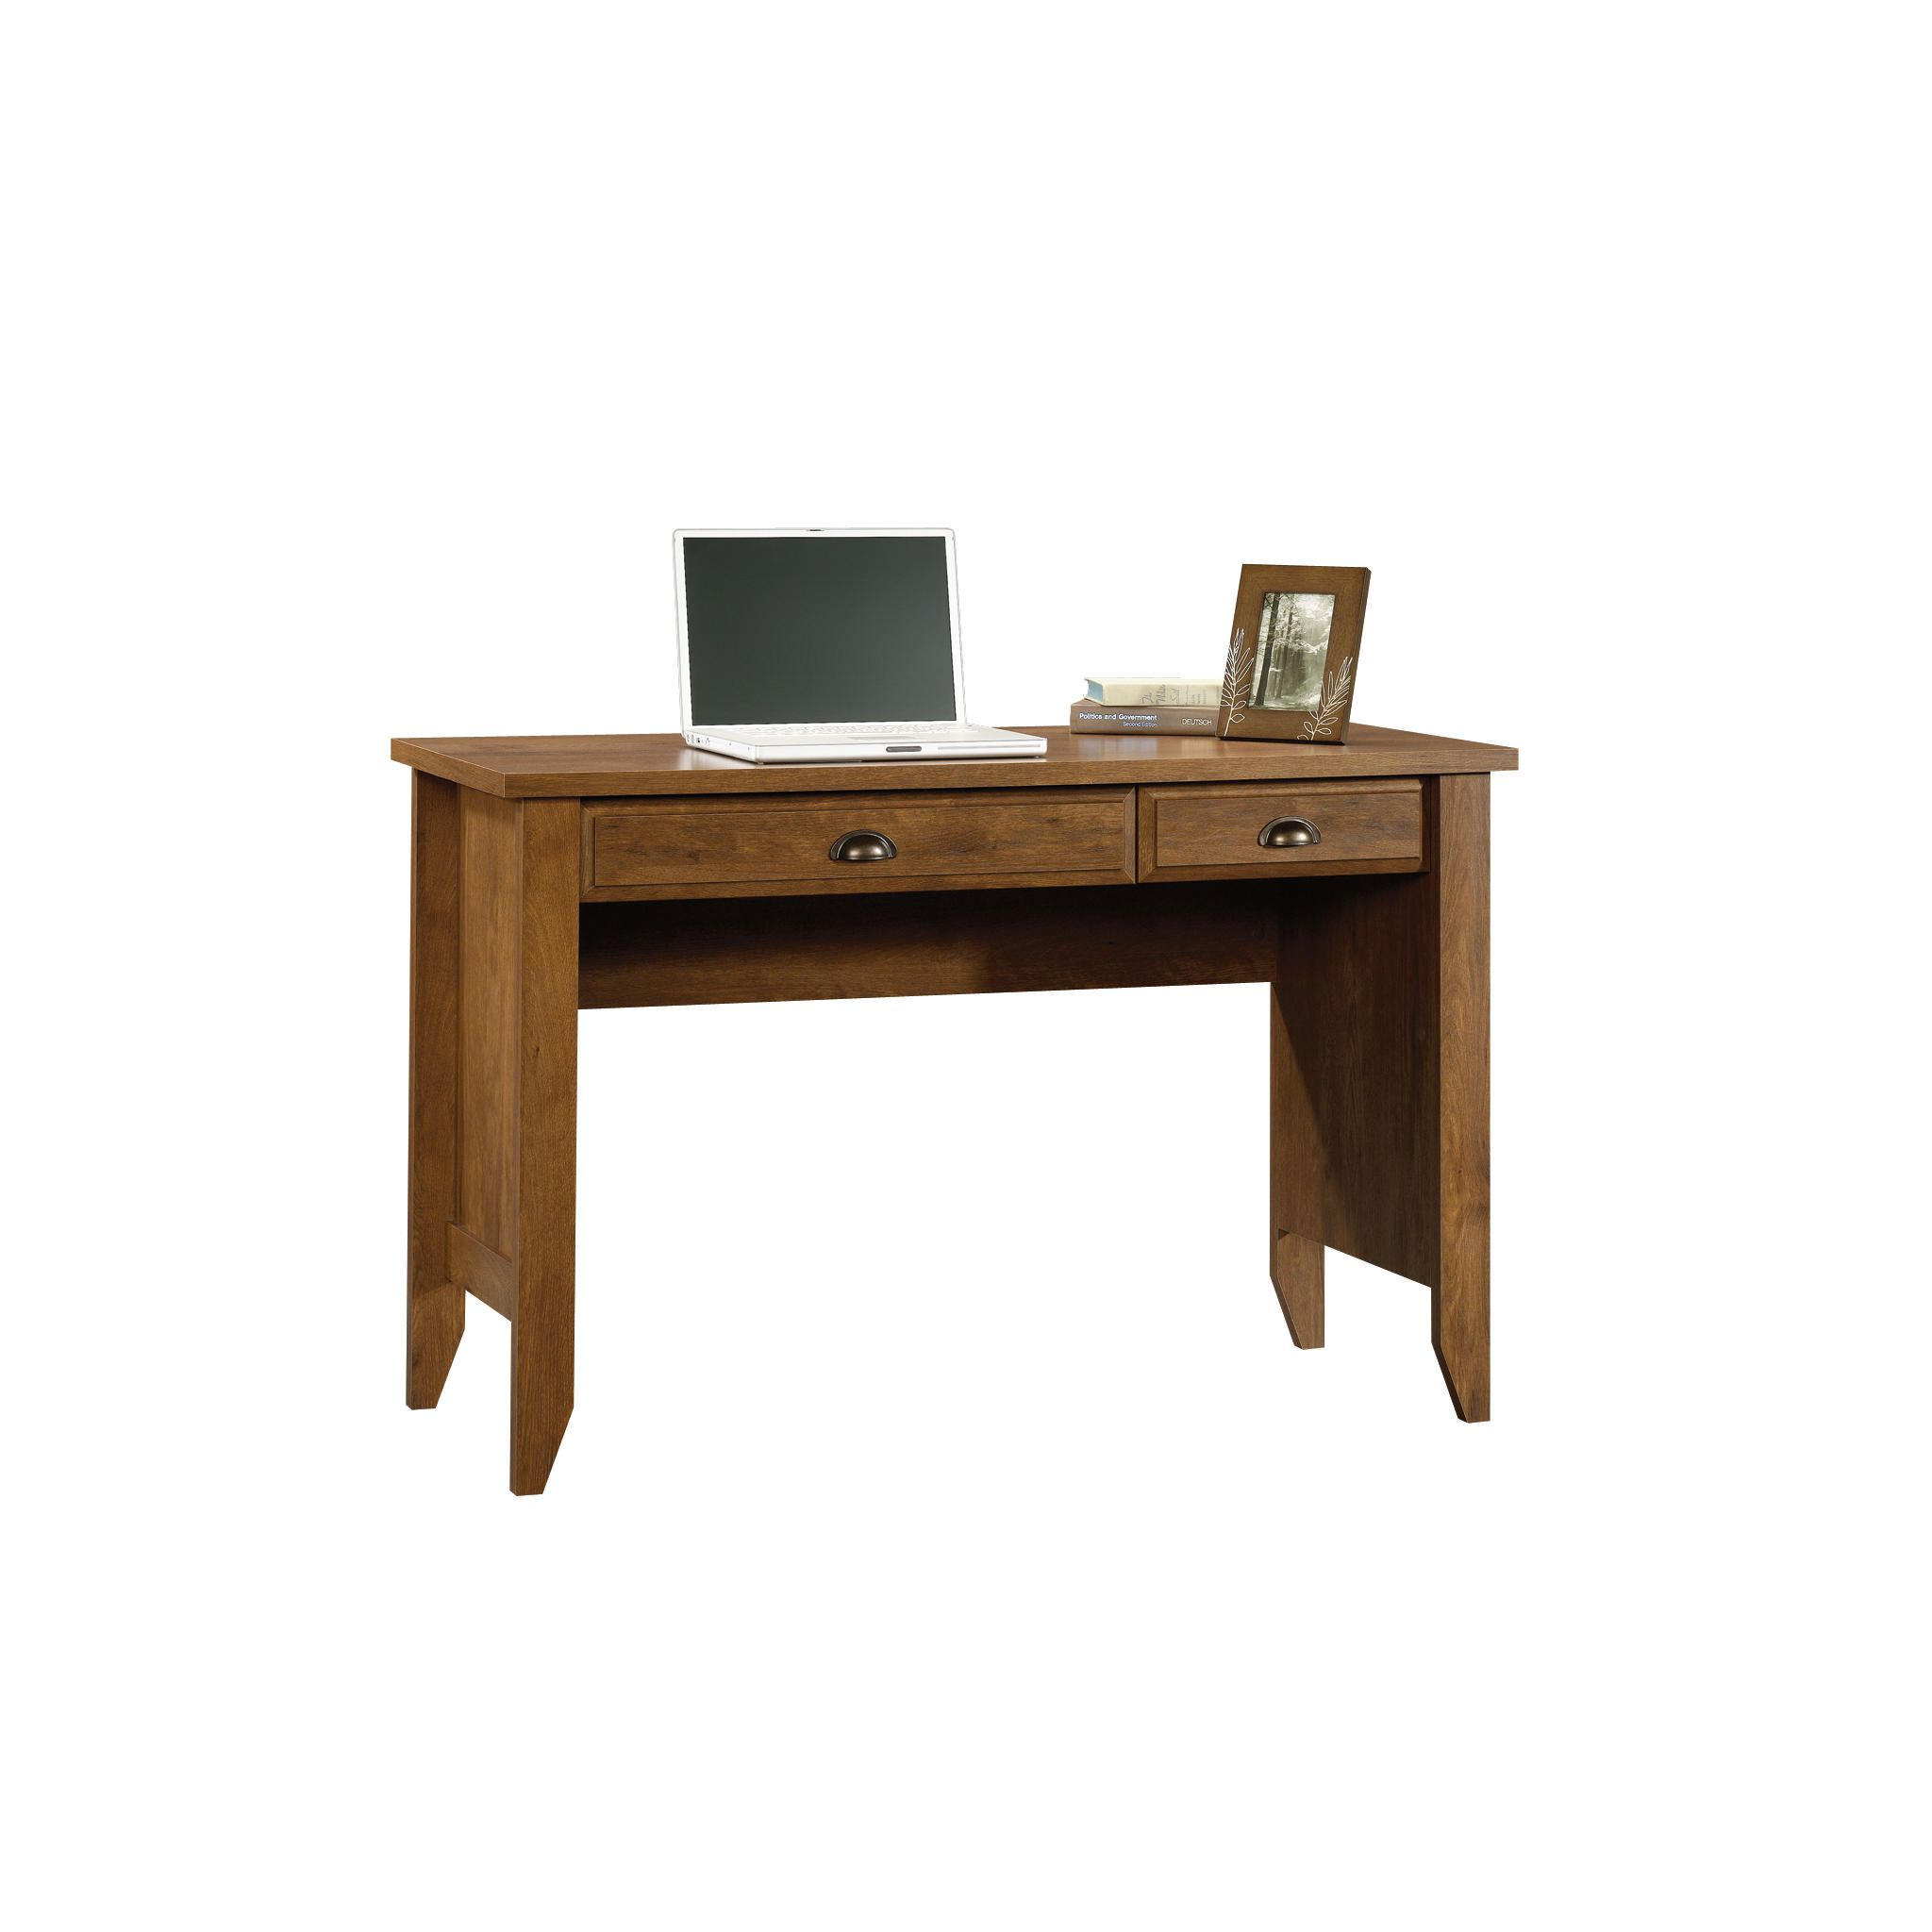 walmart computer office decor furniture desk with bedroom children idea unique creative desks